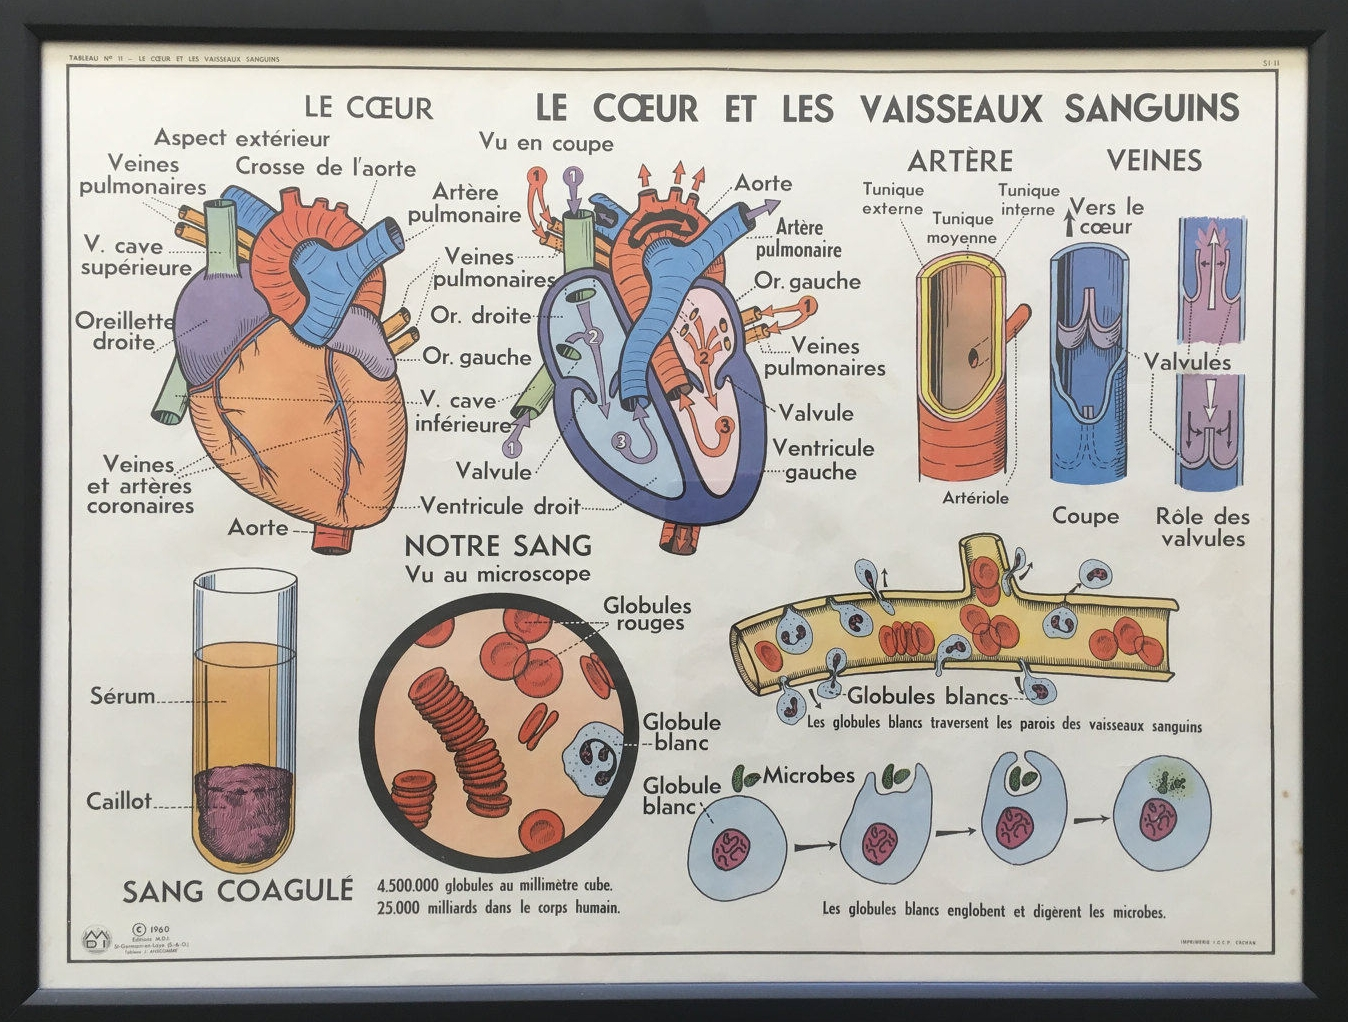 FRAMED Vintage French Medical Anatomy Education Poster- Heart and Blood Vessels